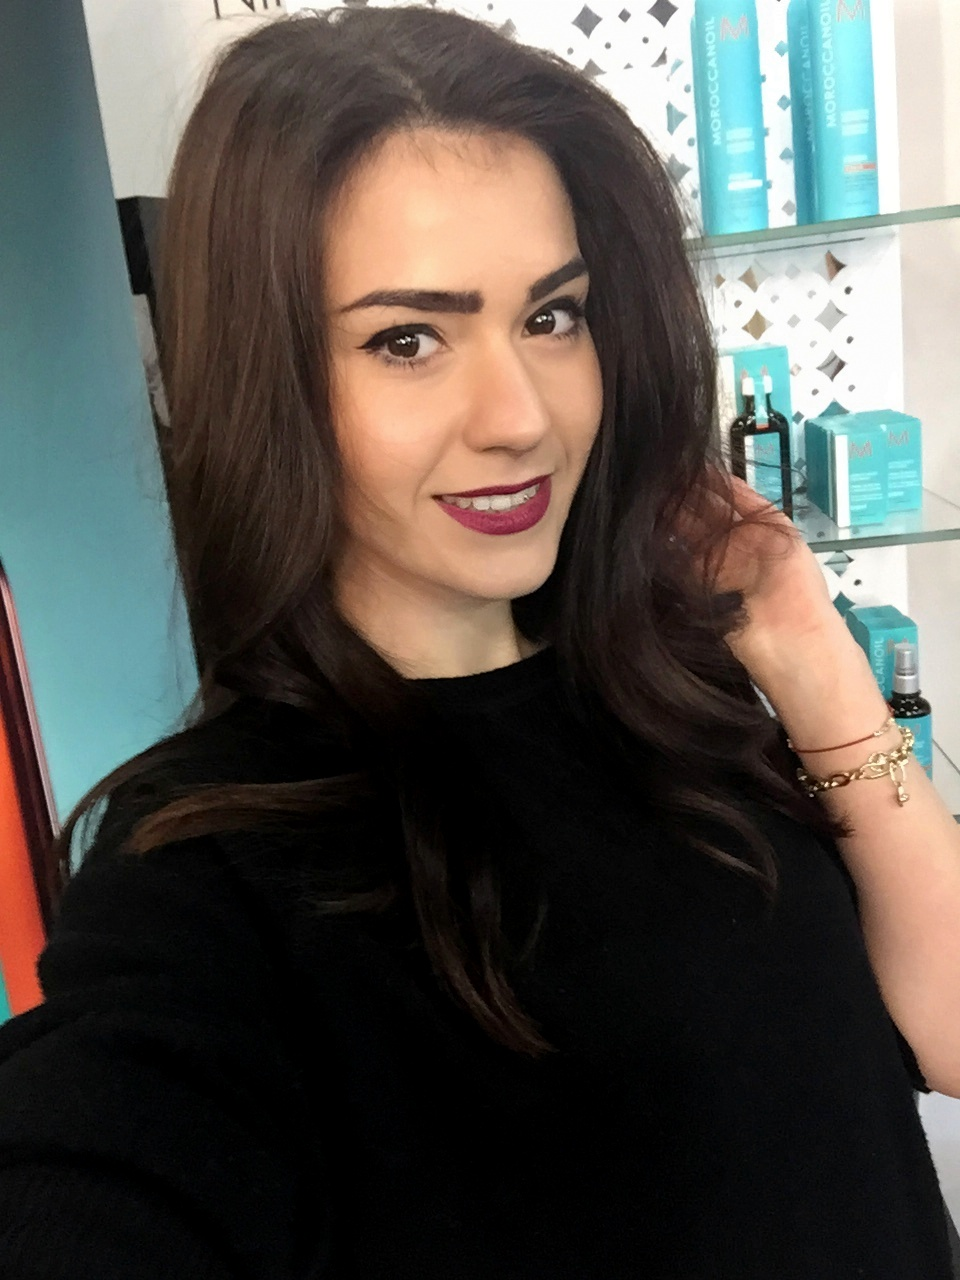 Bulgarian beauty blogger